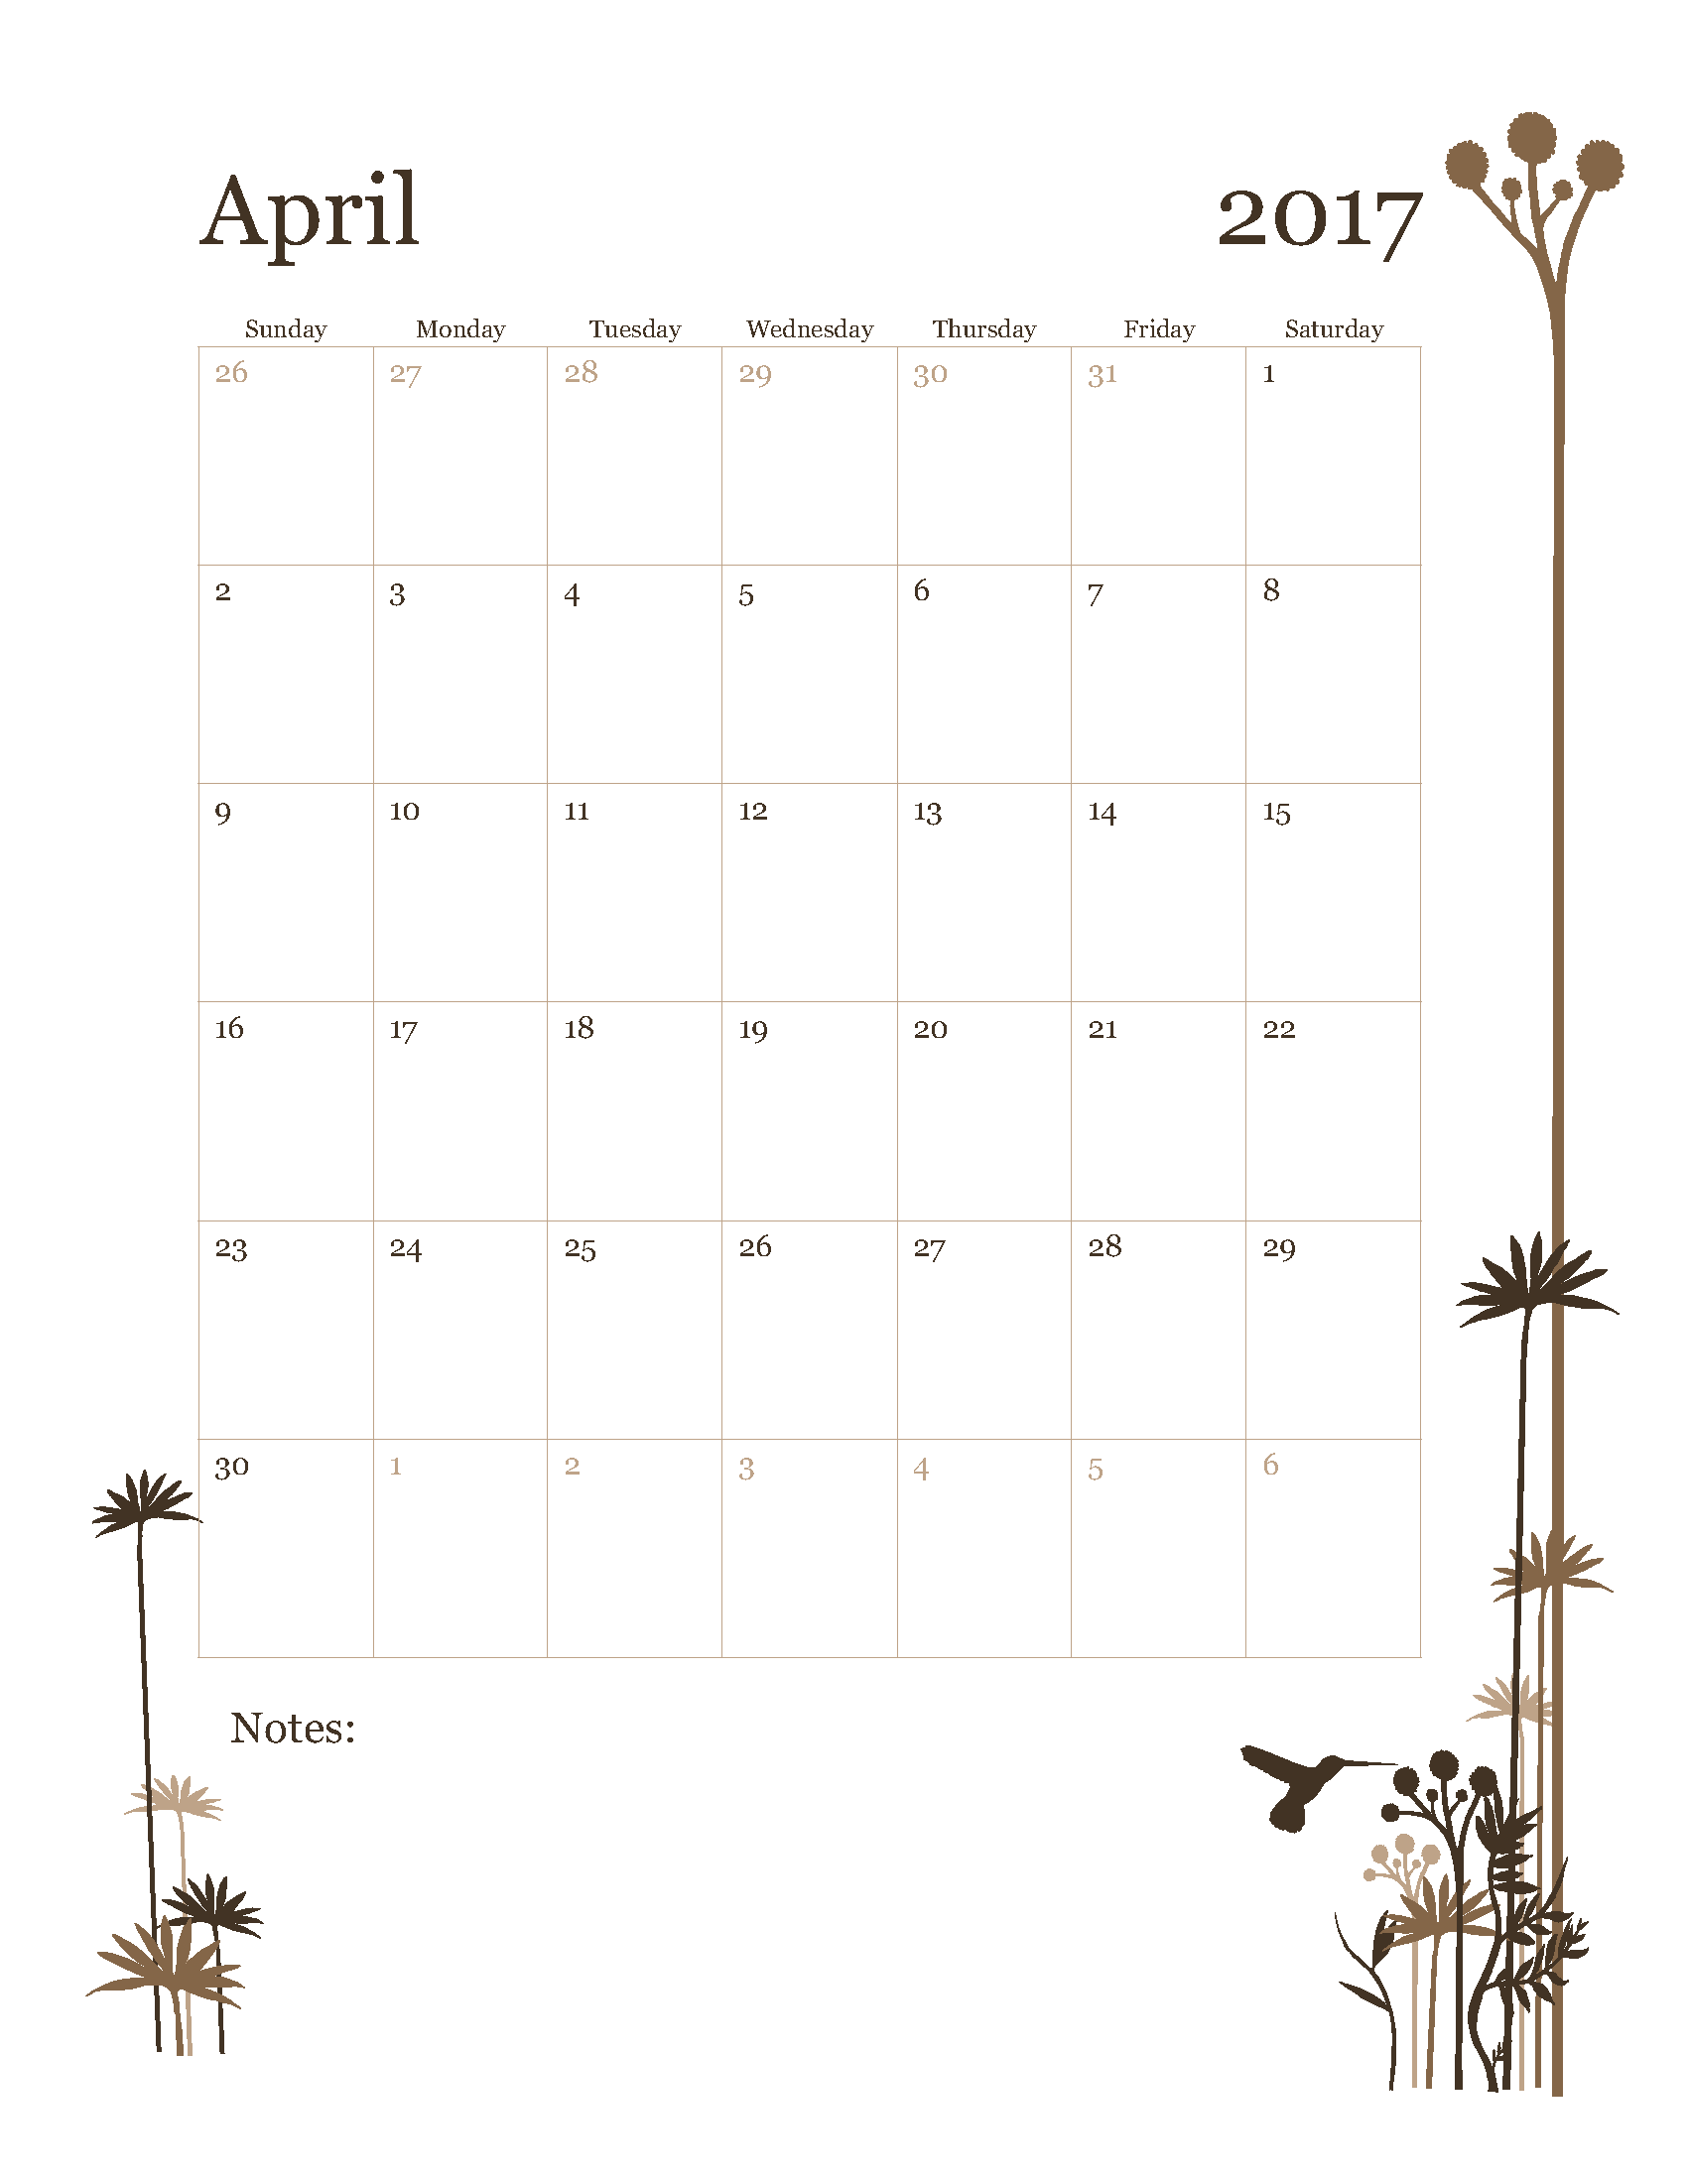 Free April 2017 Calendar Template Printable Start on Sunday - HummingBird design